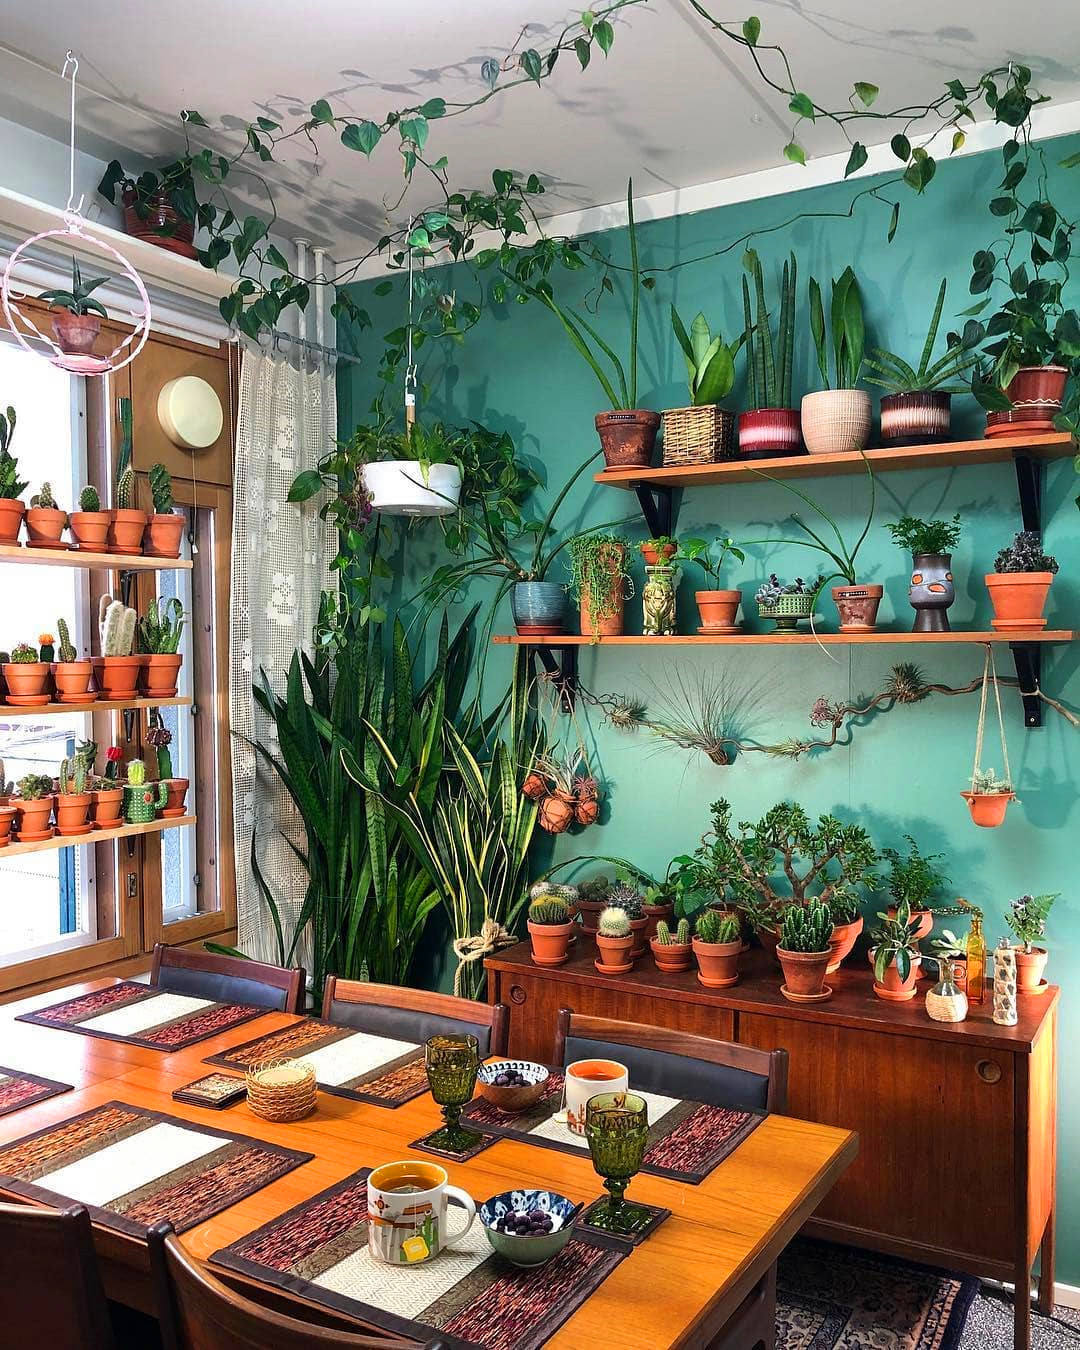 65+ Indoor Garden Ideas You Will Fall For